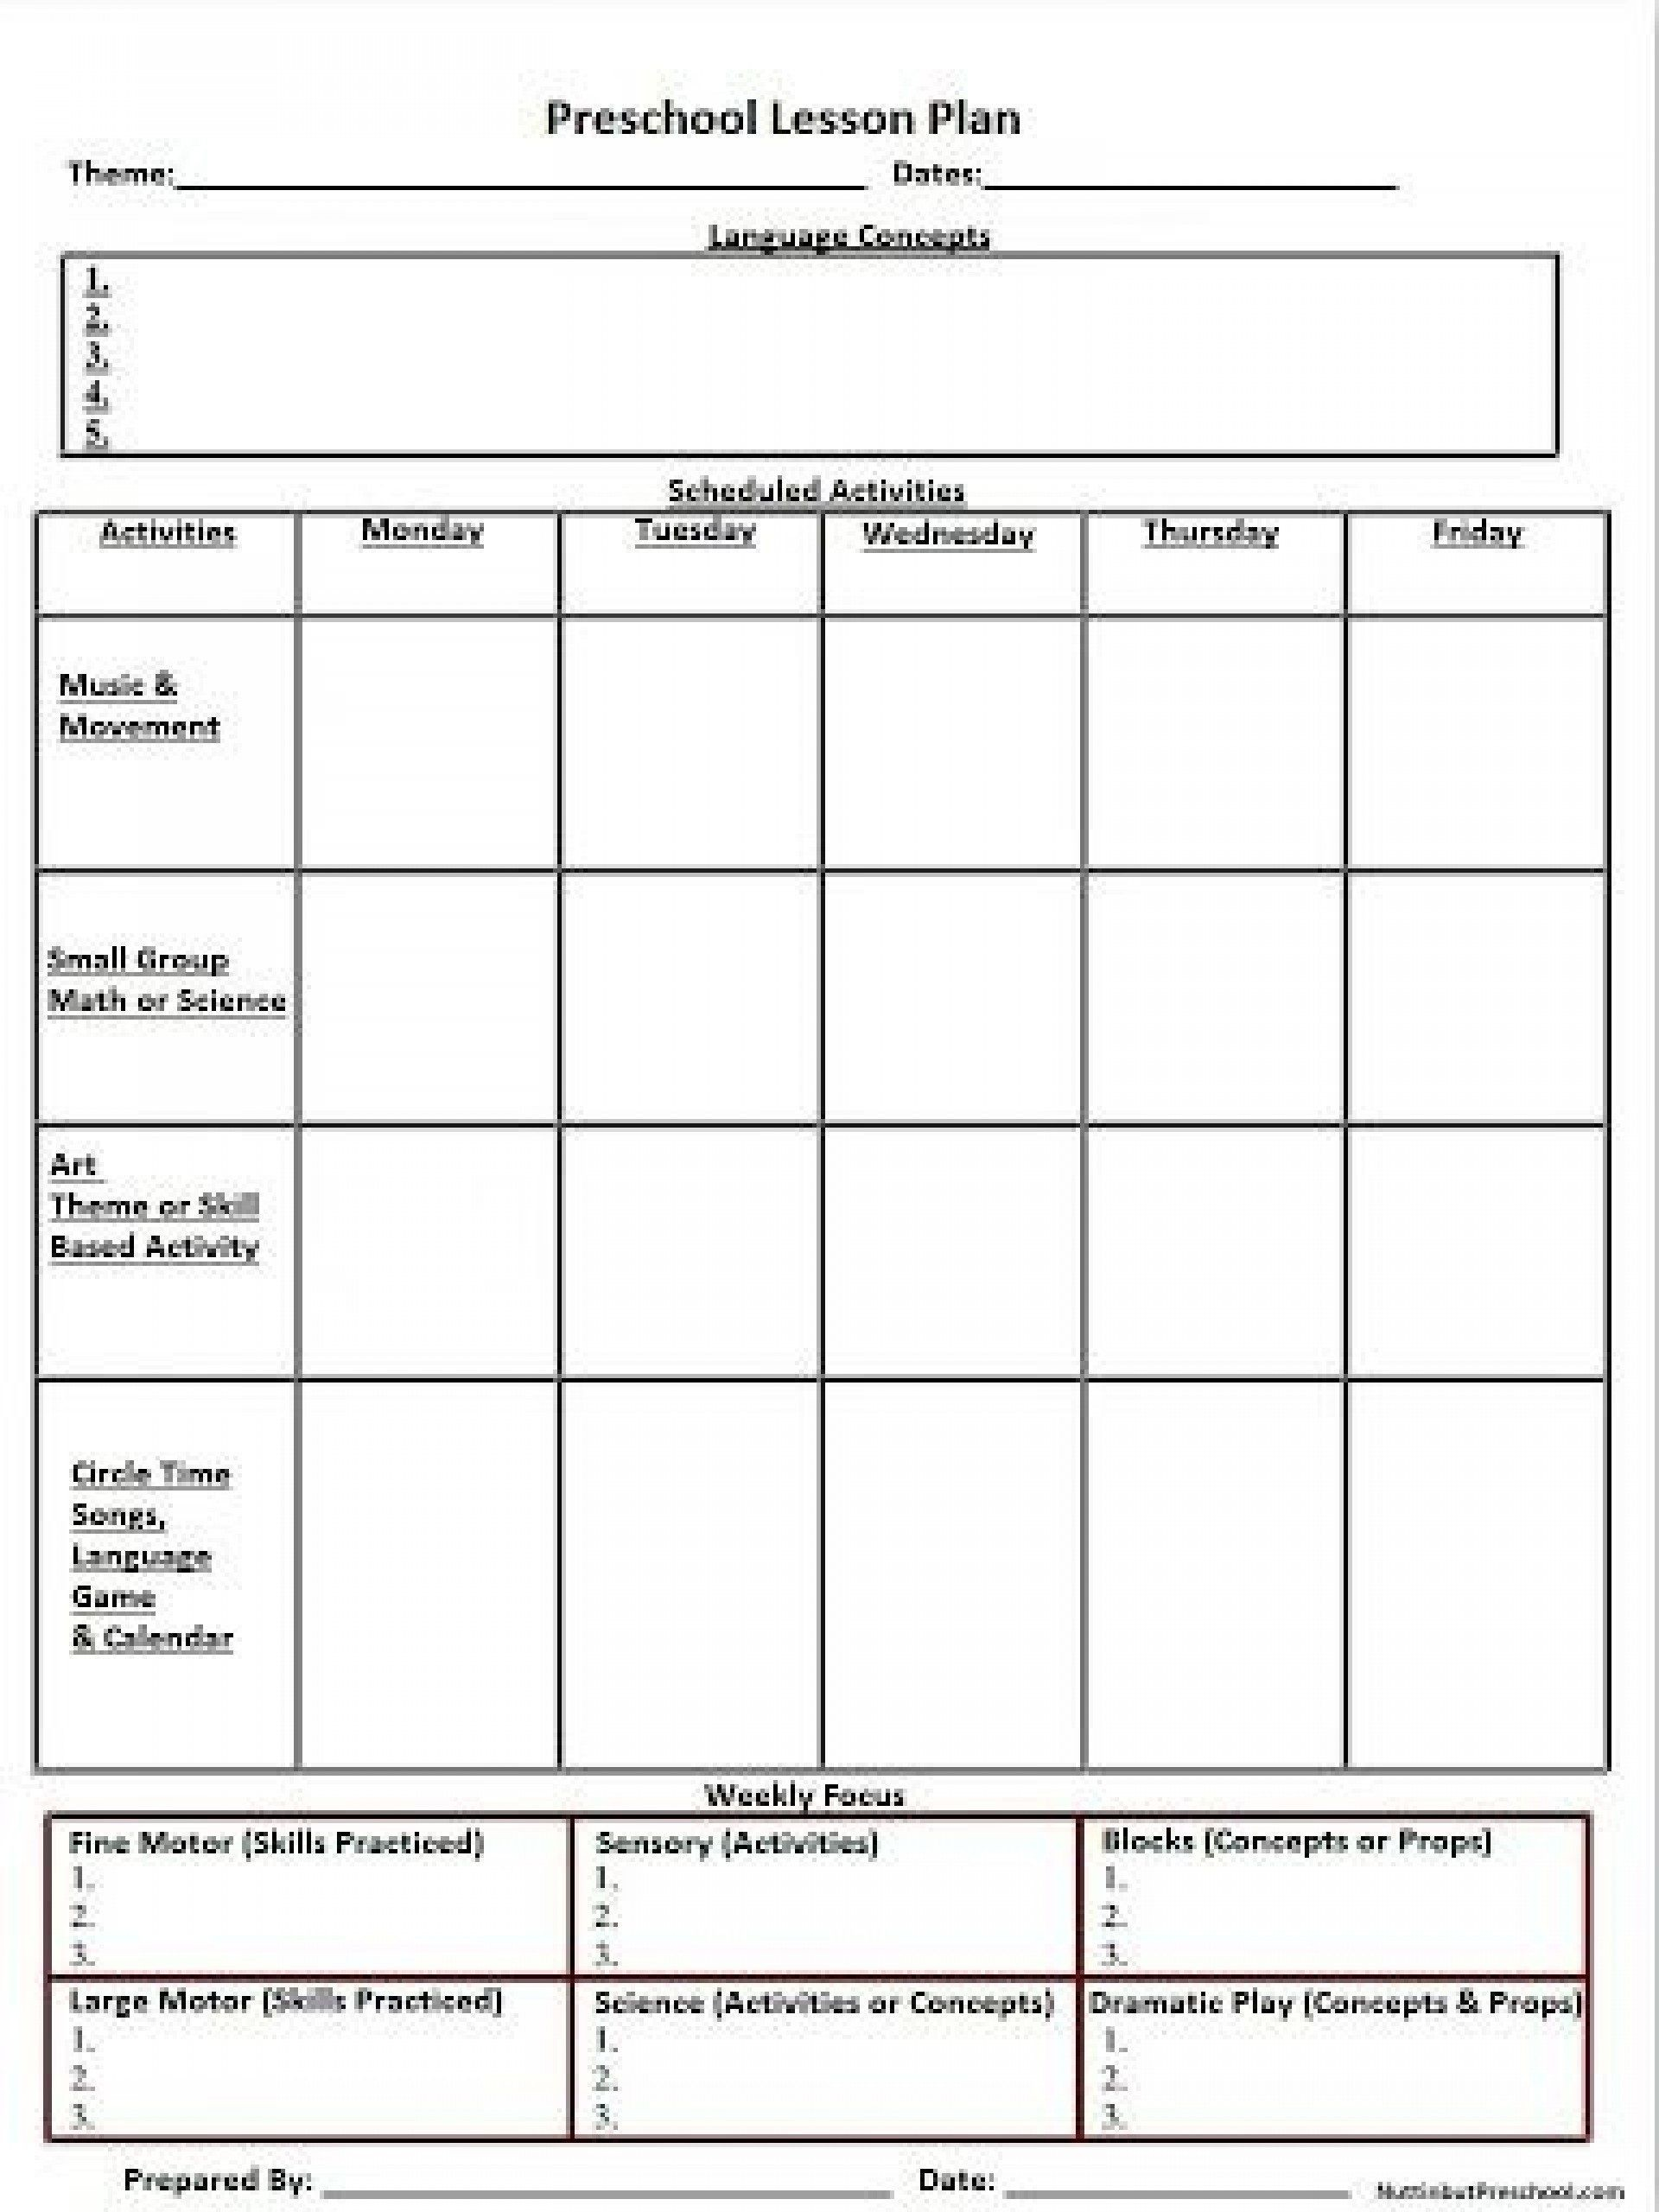 007 Shocking Weekly Lesson Plan Template High School Def  Free Example For English Pdf Of Junior1920